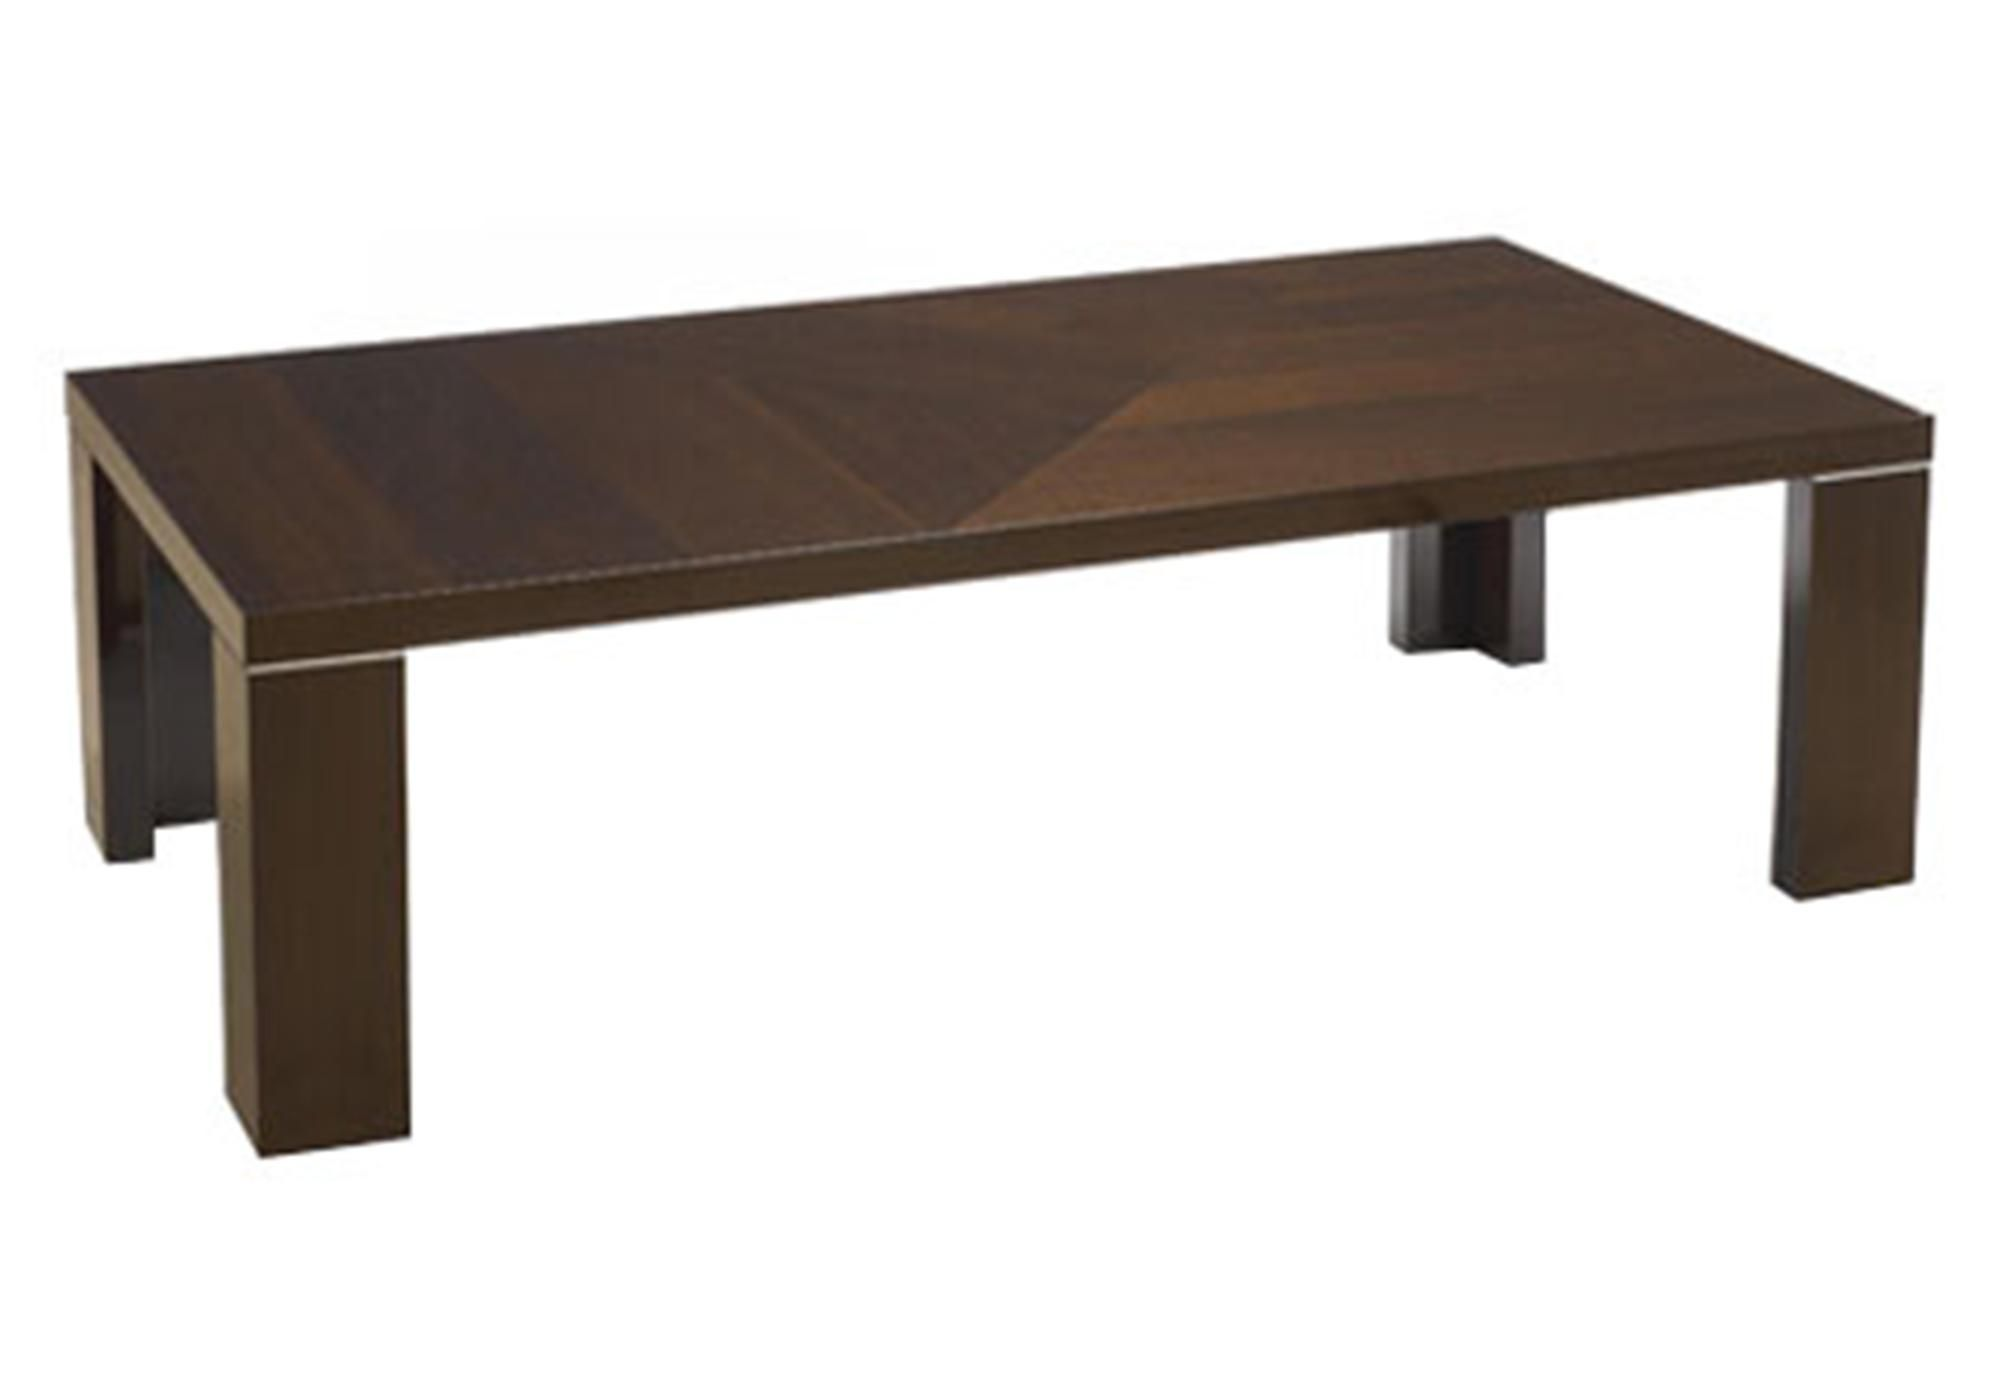 9fb5b54a76d9 £159 Rectangular Coffee Table - Alf Rossini - Dining Furniture from  Furniture Village Oak Coffee